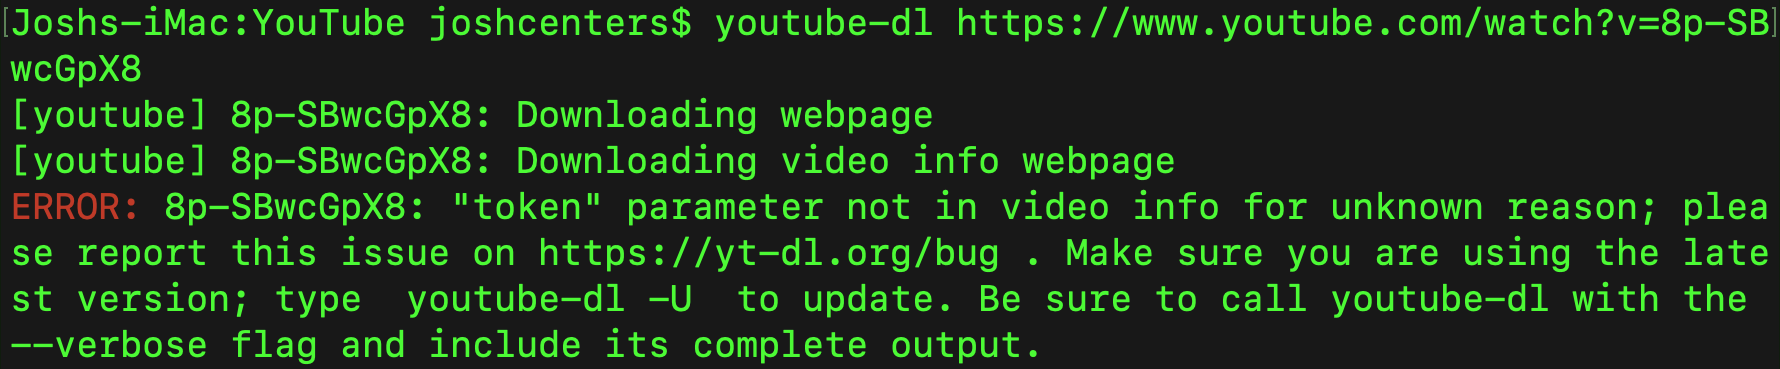 Downloading YouTube Videos in macOS - TidBITS